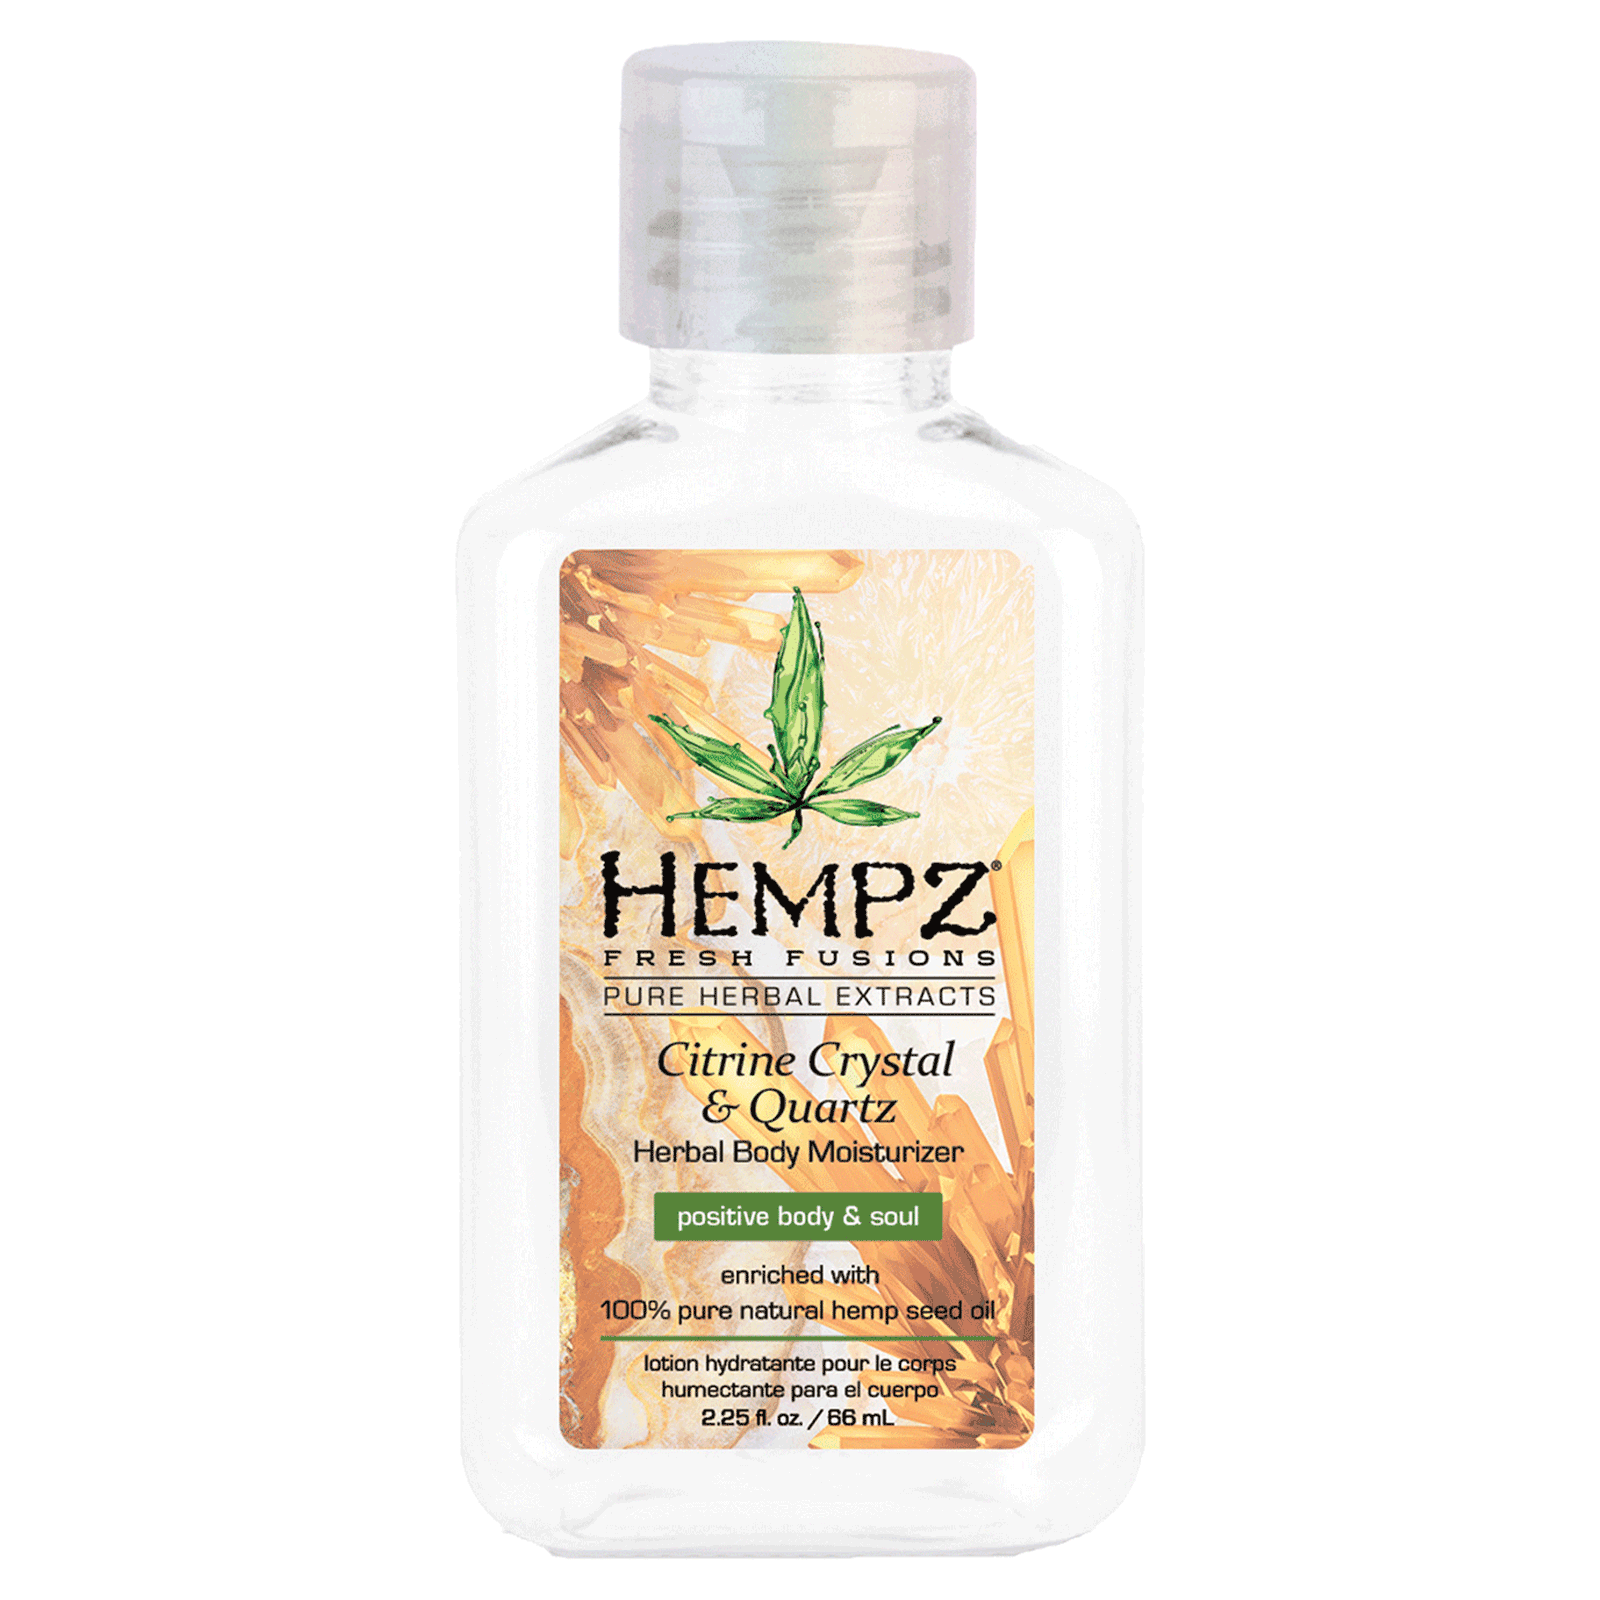 Citrine Crystal & Quartz Body Moisturizer